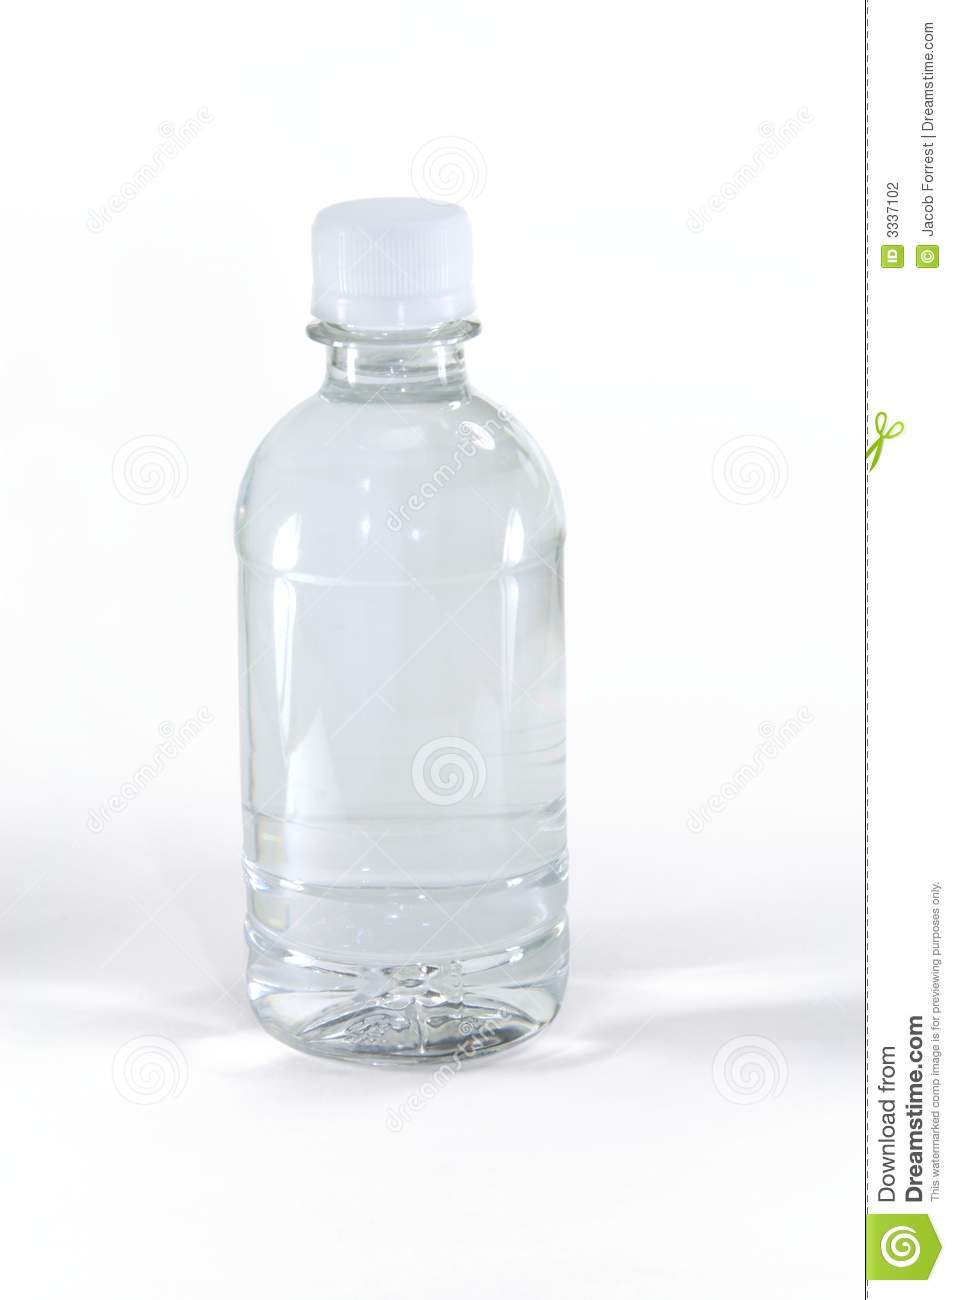 Water Bottle With No Label Stock Photography - Image: 3337102